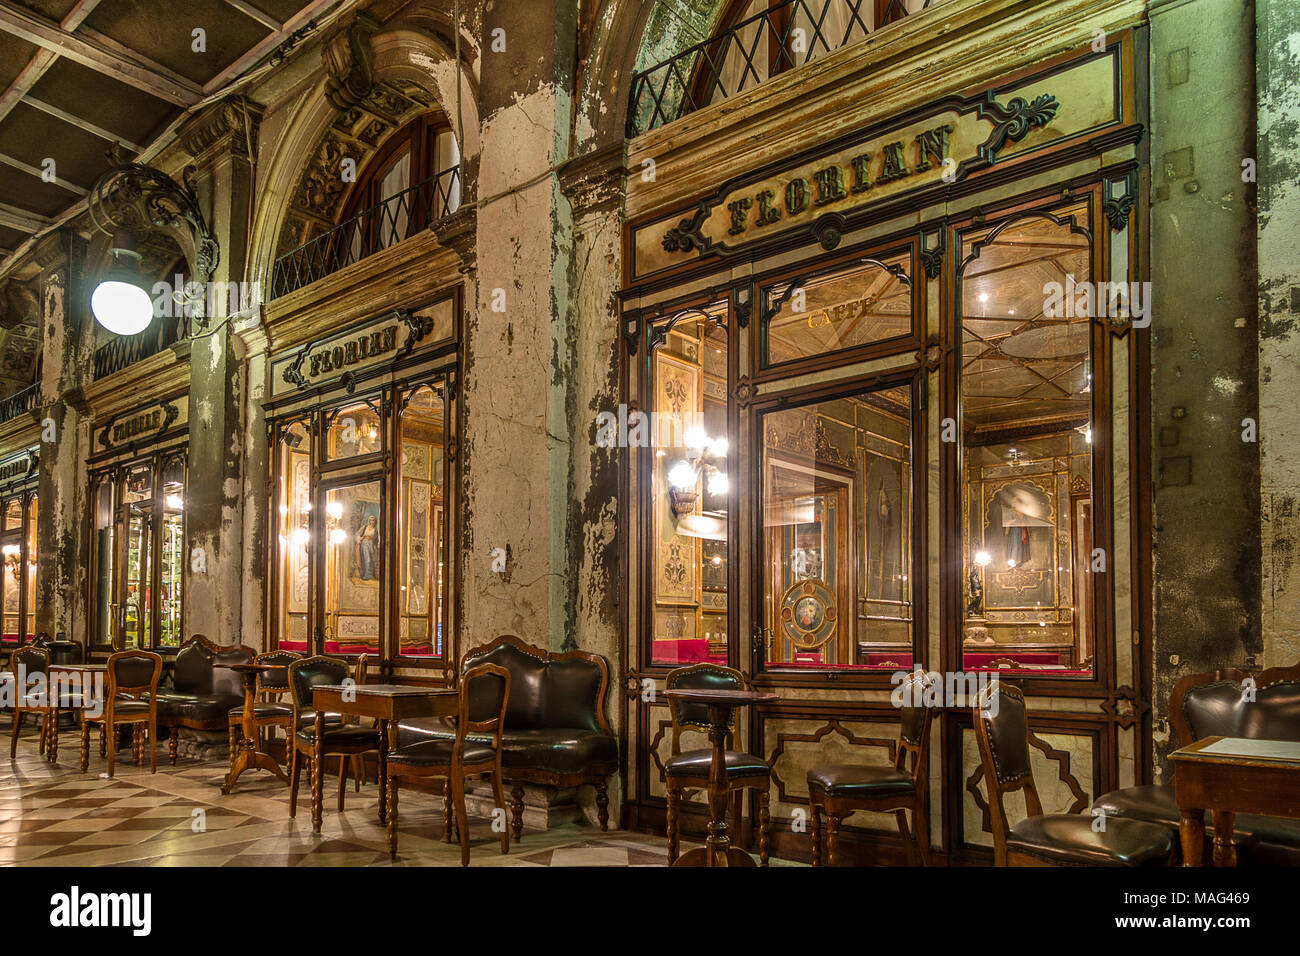 Cafe Florian in Venice Italy - Stock Image